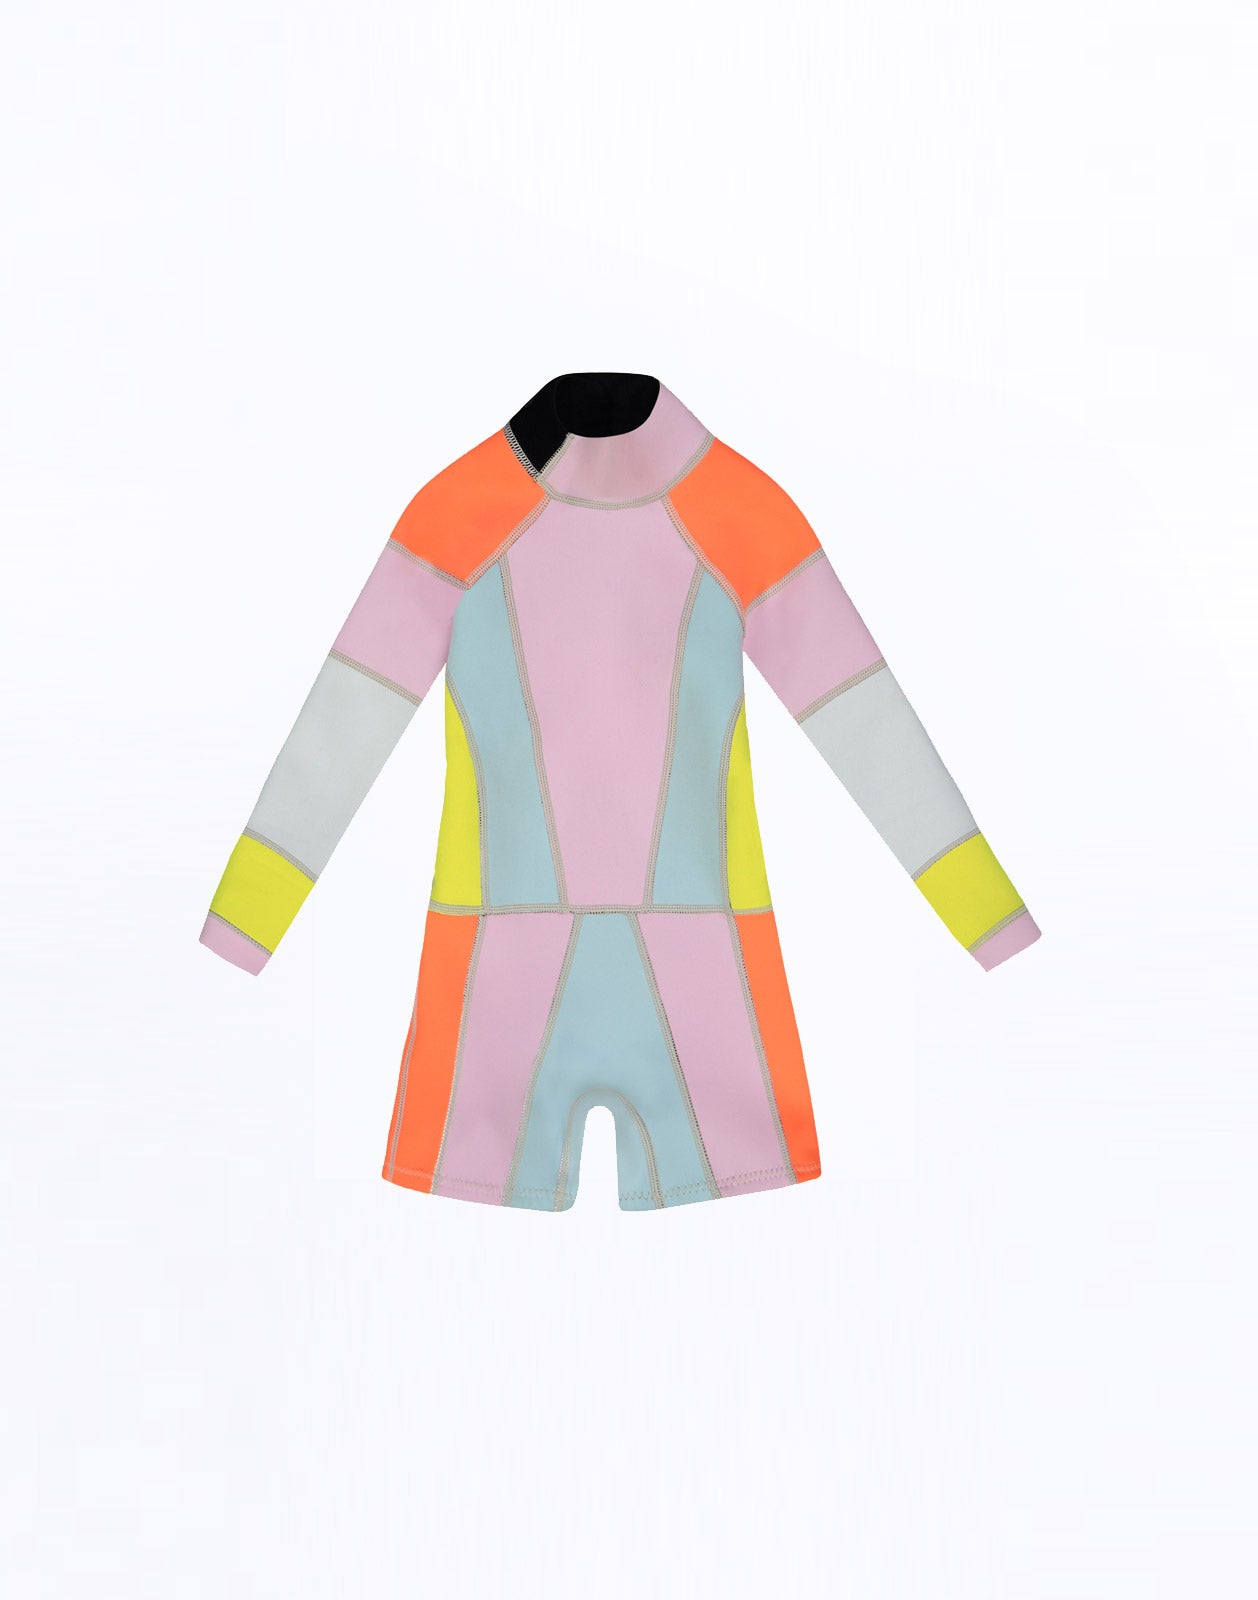 Kid's colorblock wetsuit product image.